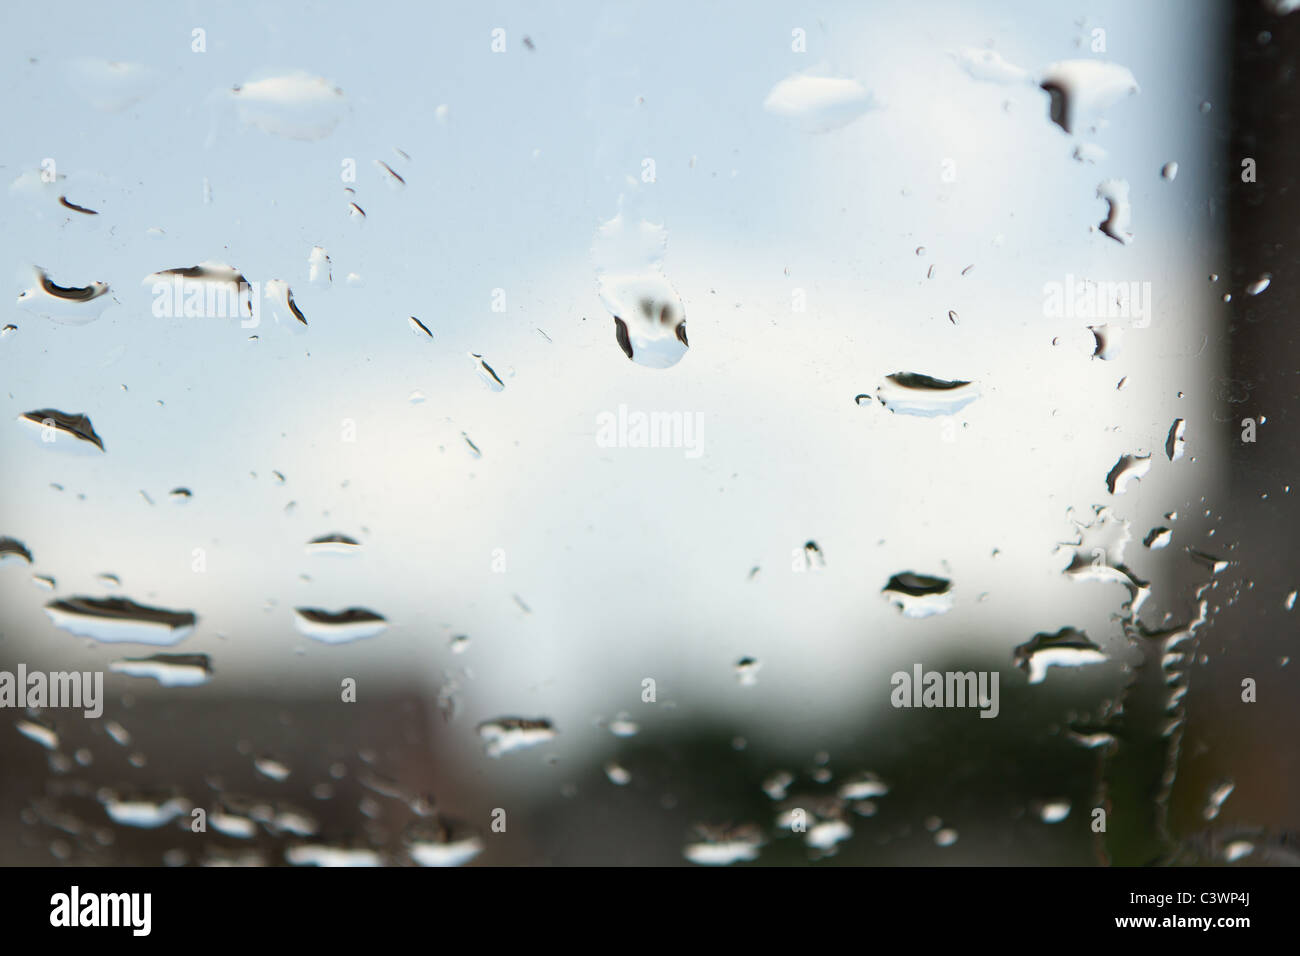 Rain drops on the window and blurred sky and house in the background - Stock Image